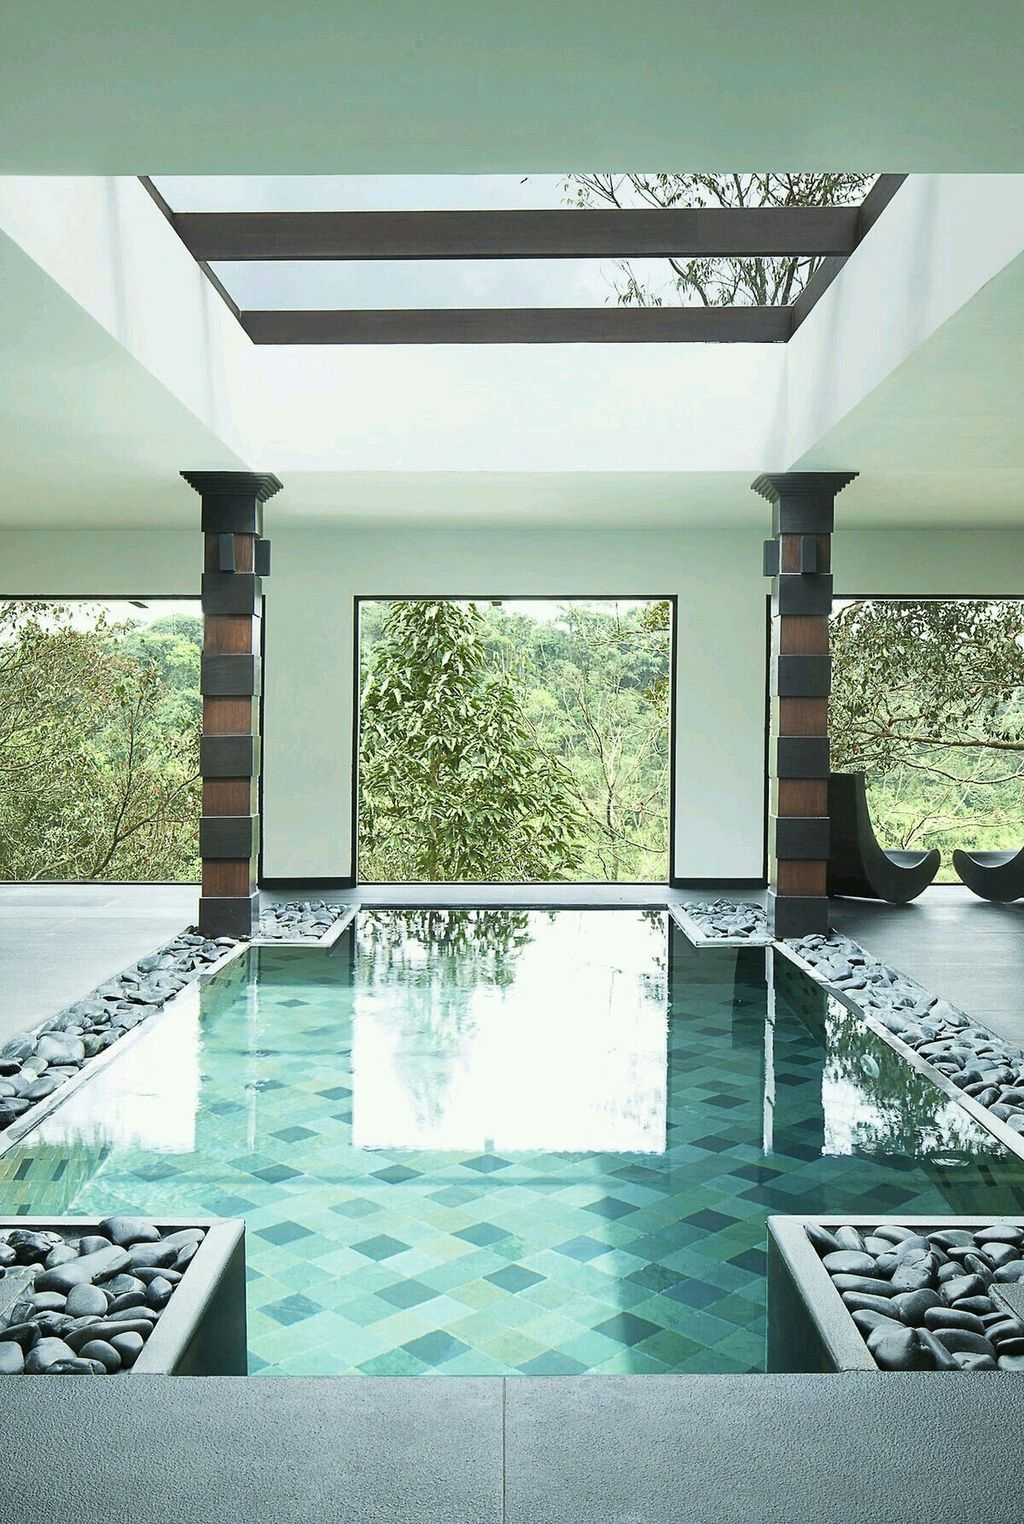 Adorable Small Indoor Swimming Pool Design Ideas 05